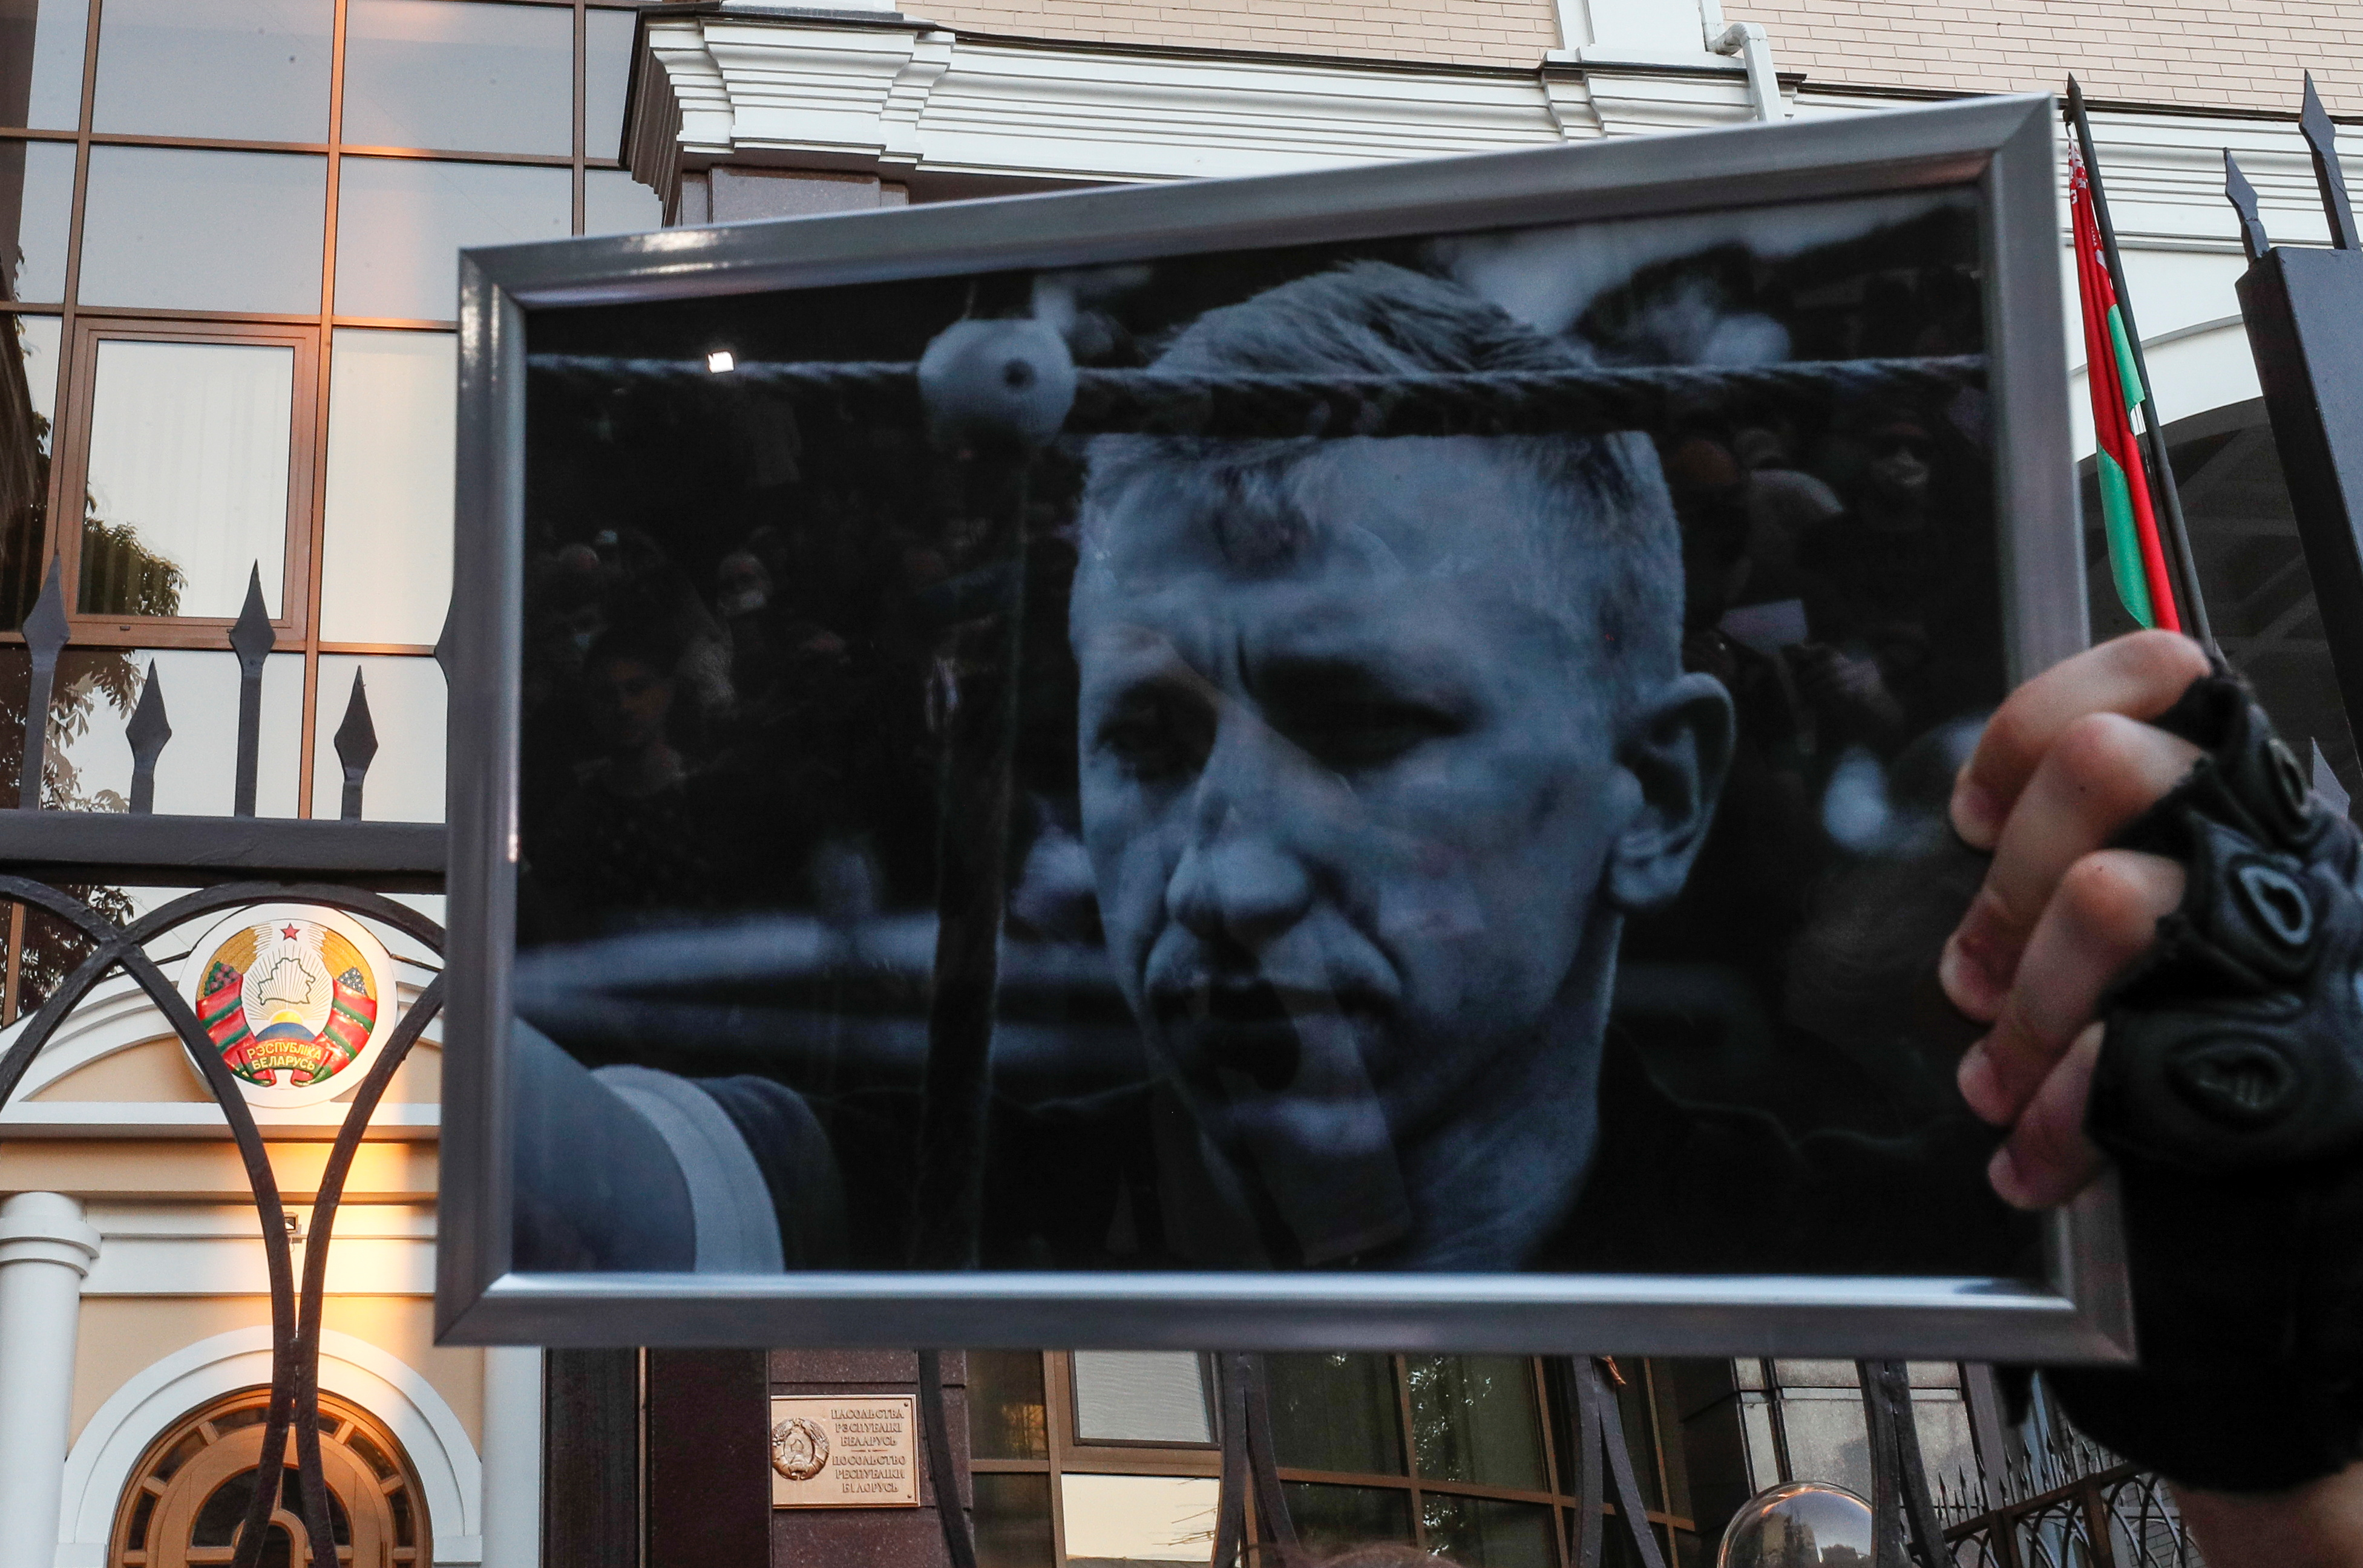 An activist holds a portrait of Vitaly Shishov during a rally to commemorate the Belarusian activist living in exile who was found hanged in a park near his home this morning, outside the Belarusian Embassy in Kyiv, Ukraine August 3, 2021. REUTERS/Gleb Garanich